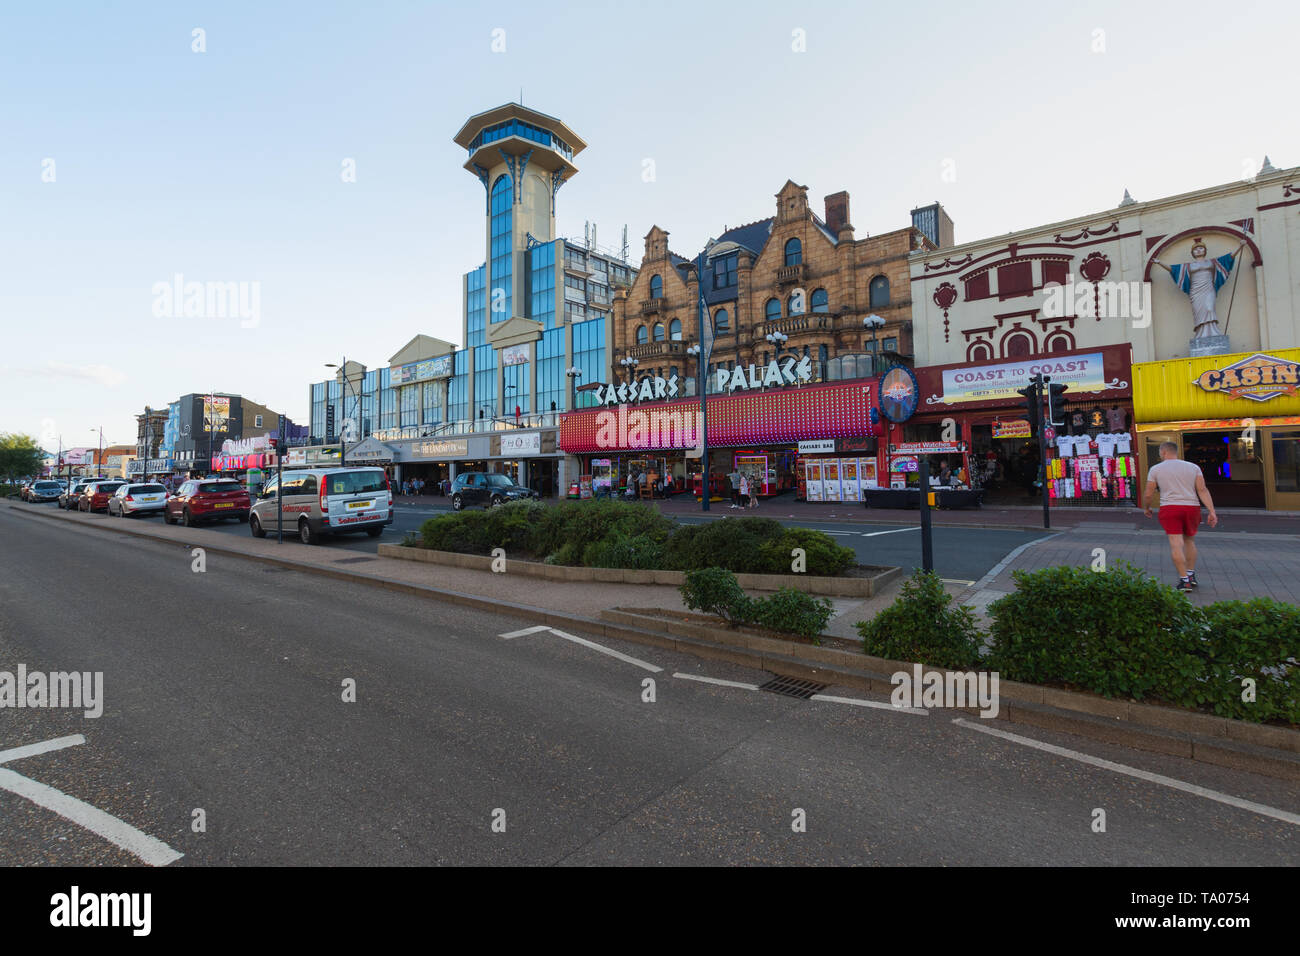 Great Yarmouth Is A Resort Town On The East Coast Of England It S